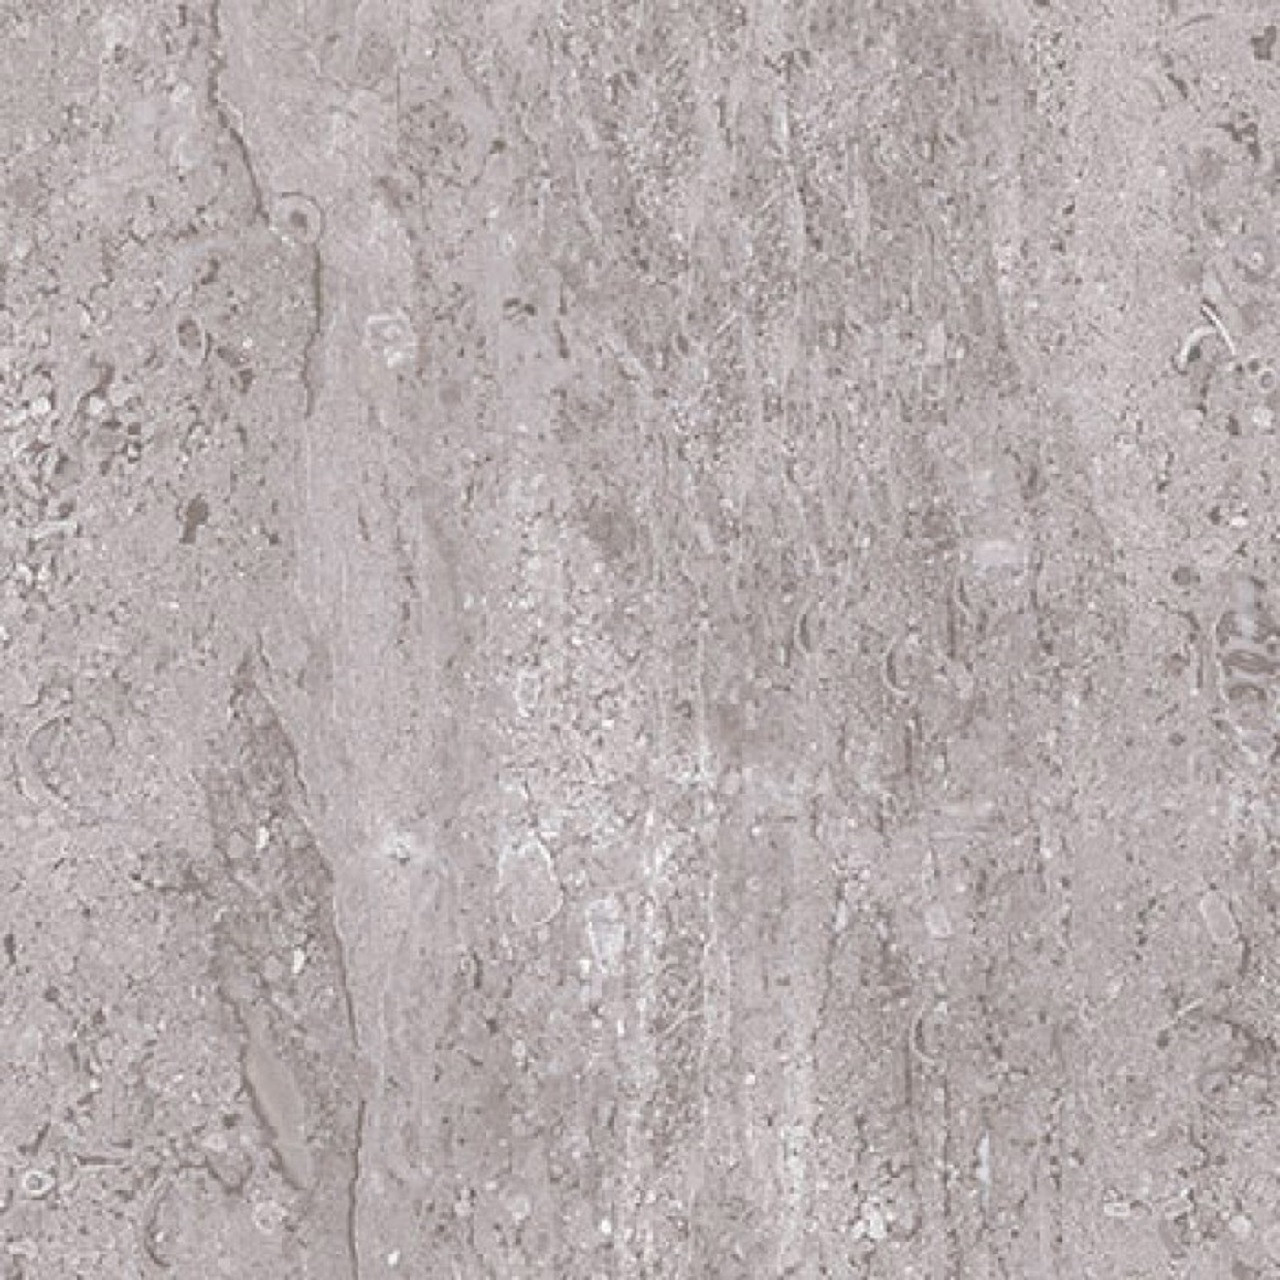 HD Parallel Dark Grey Floor 49.8cm x 49.8cm